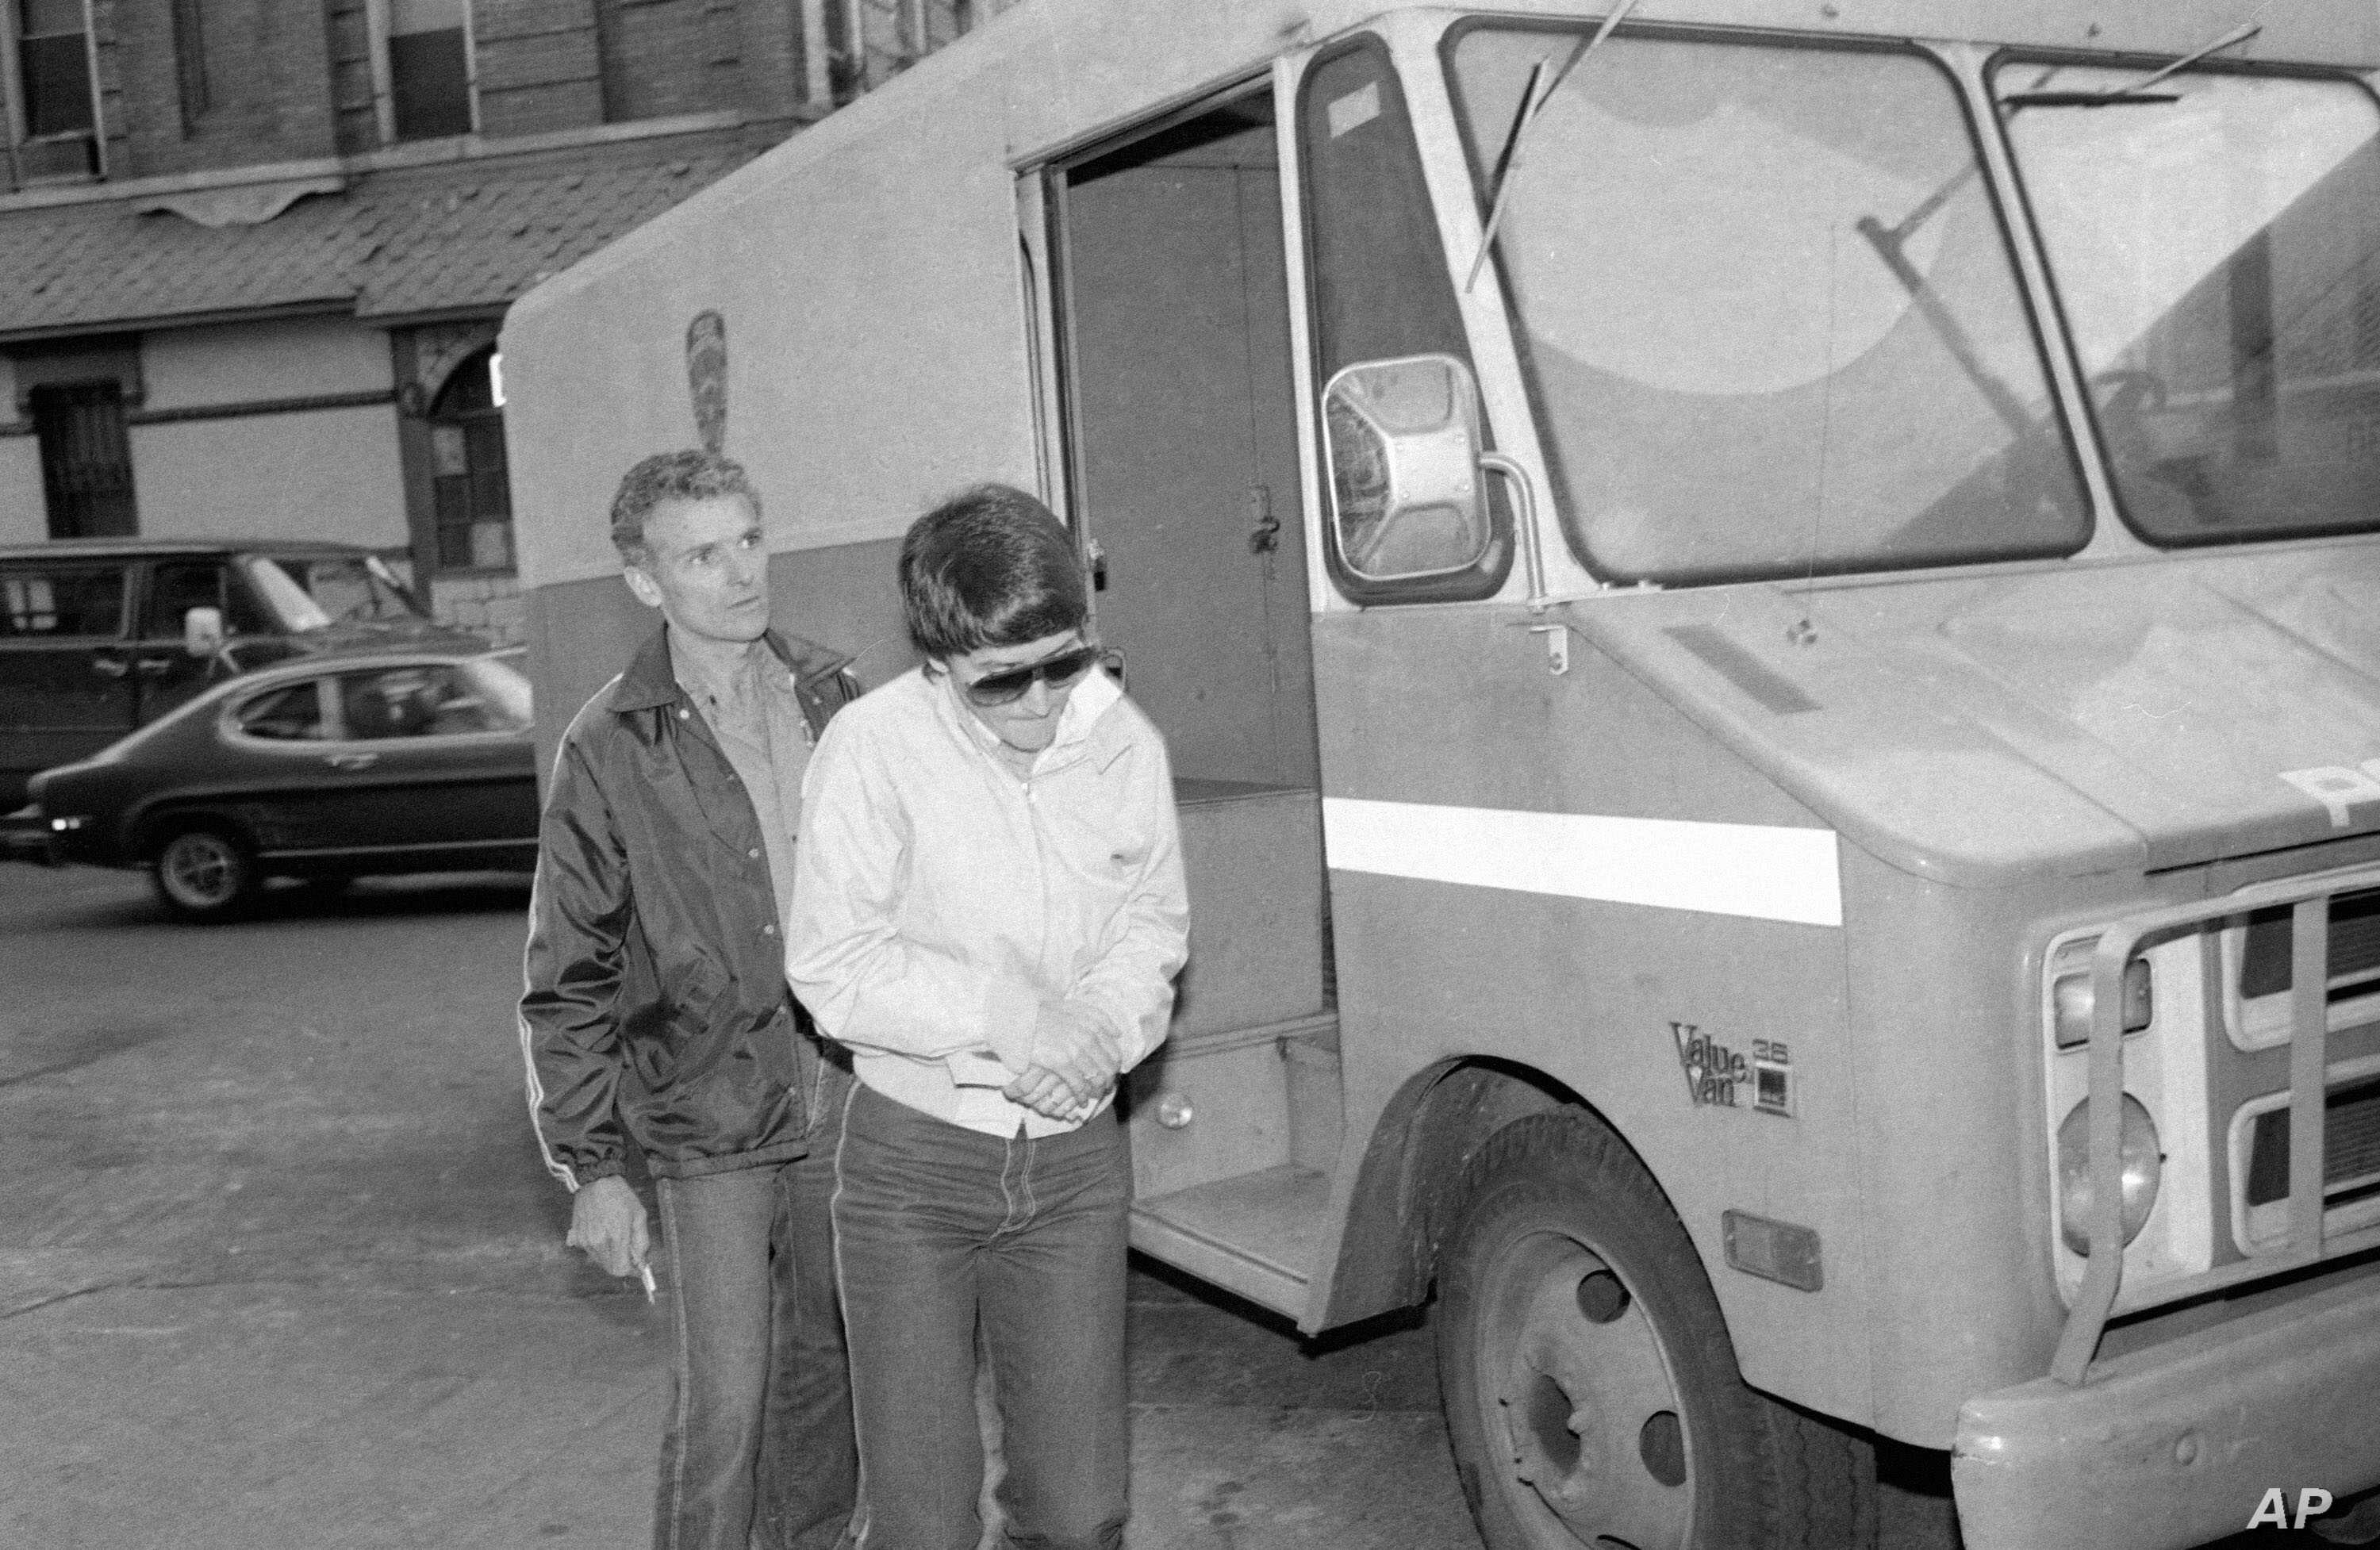 FILE - Rosie Ruiz, who was accused of cutting corners to win the Boston Marathon two years ago, leaves Central Booking at Police Headquarters in New York, April 20, 1982, where she was charged with stealing $60,000 from the firm where she worked.